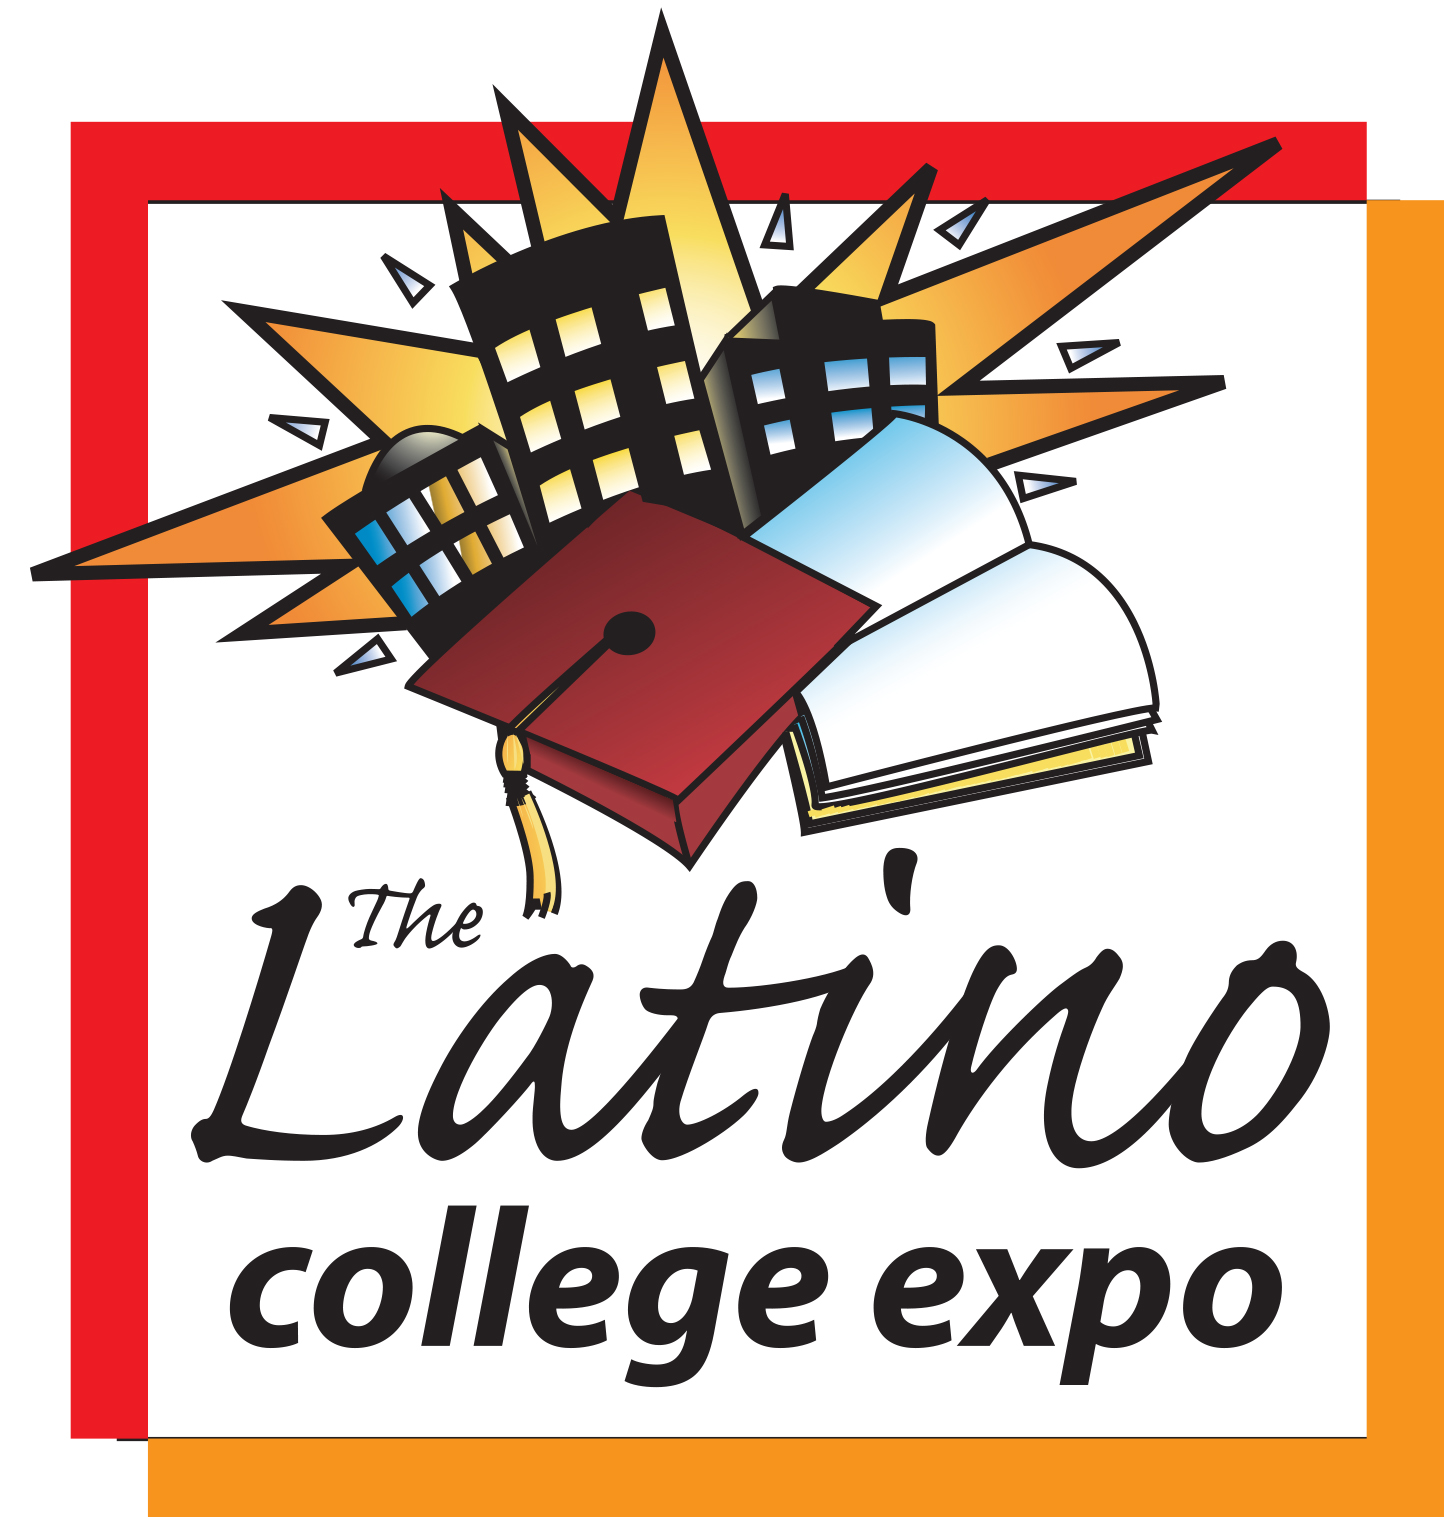 Latino College Expo logo